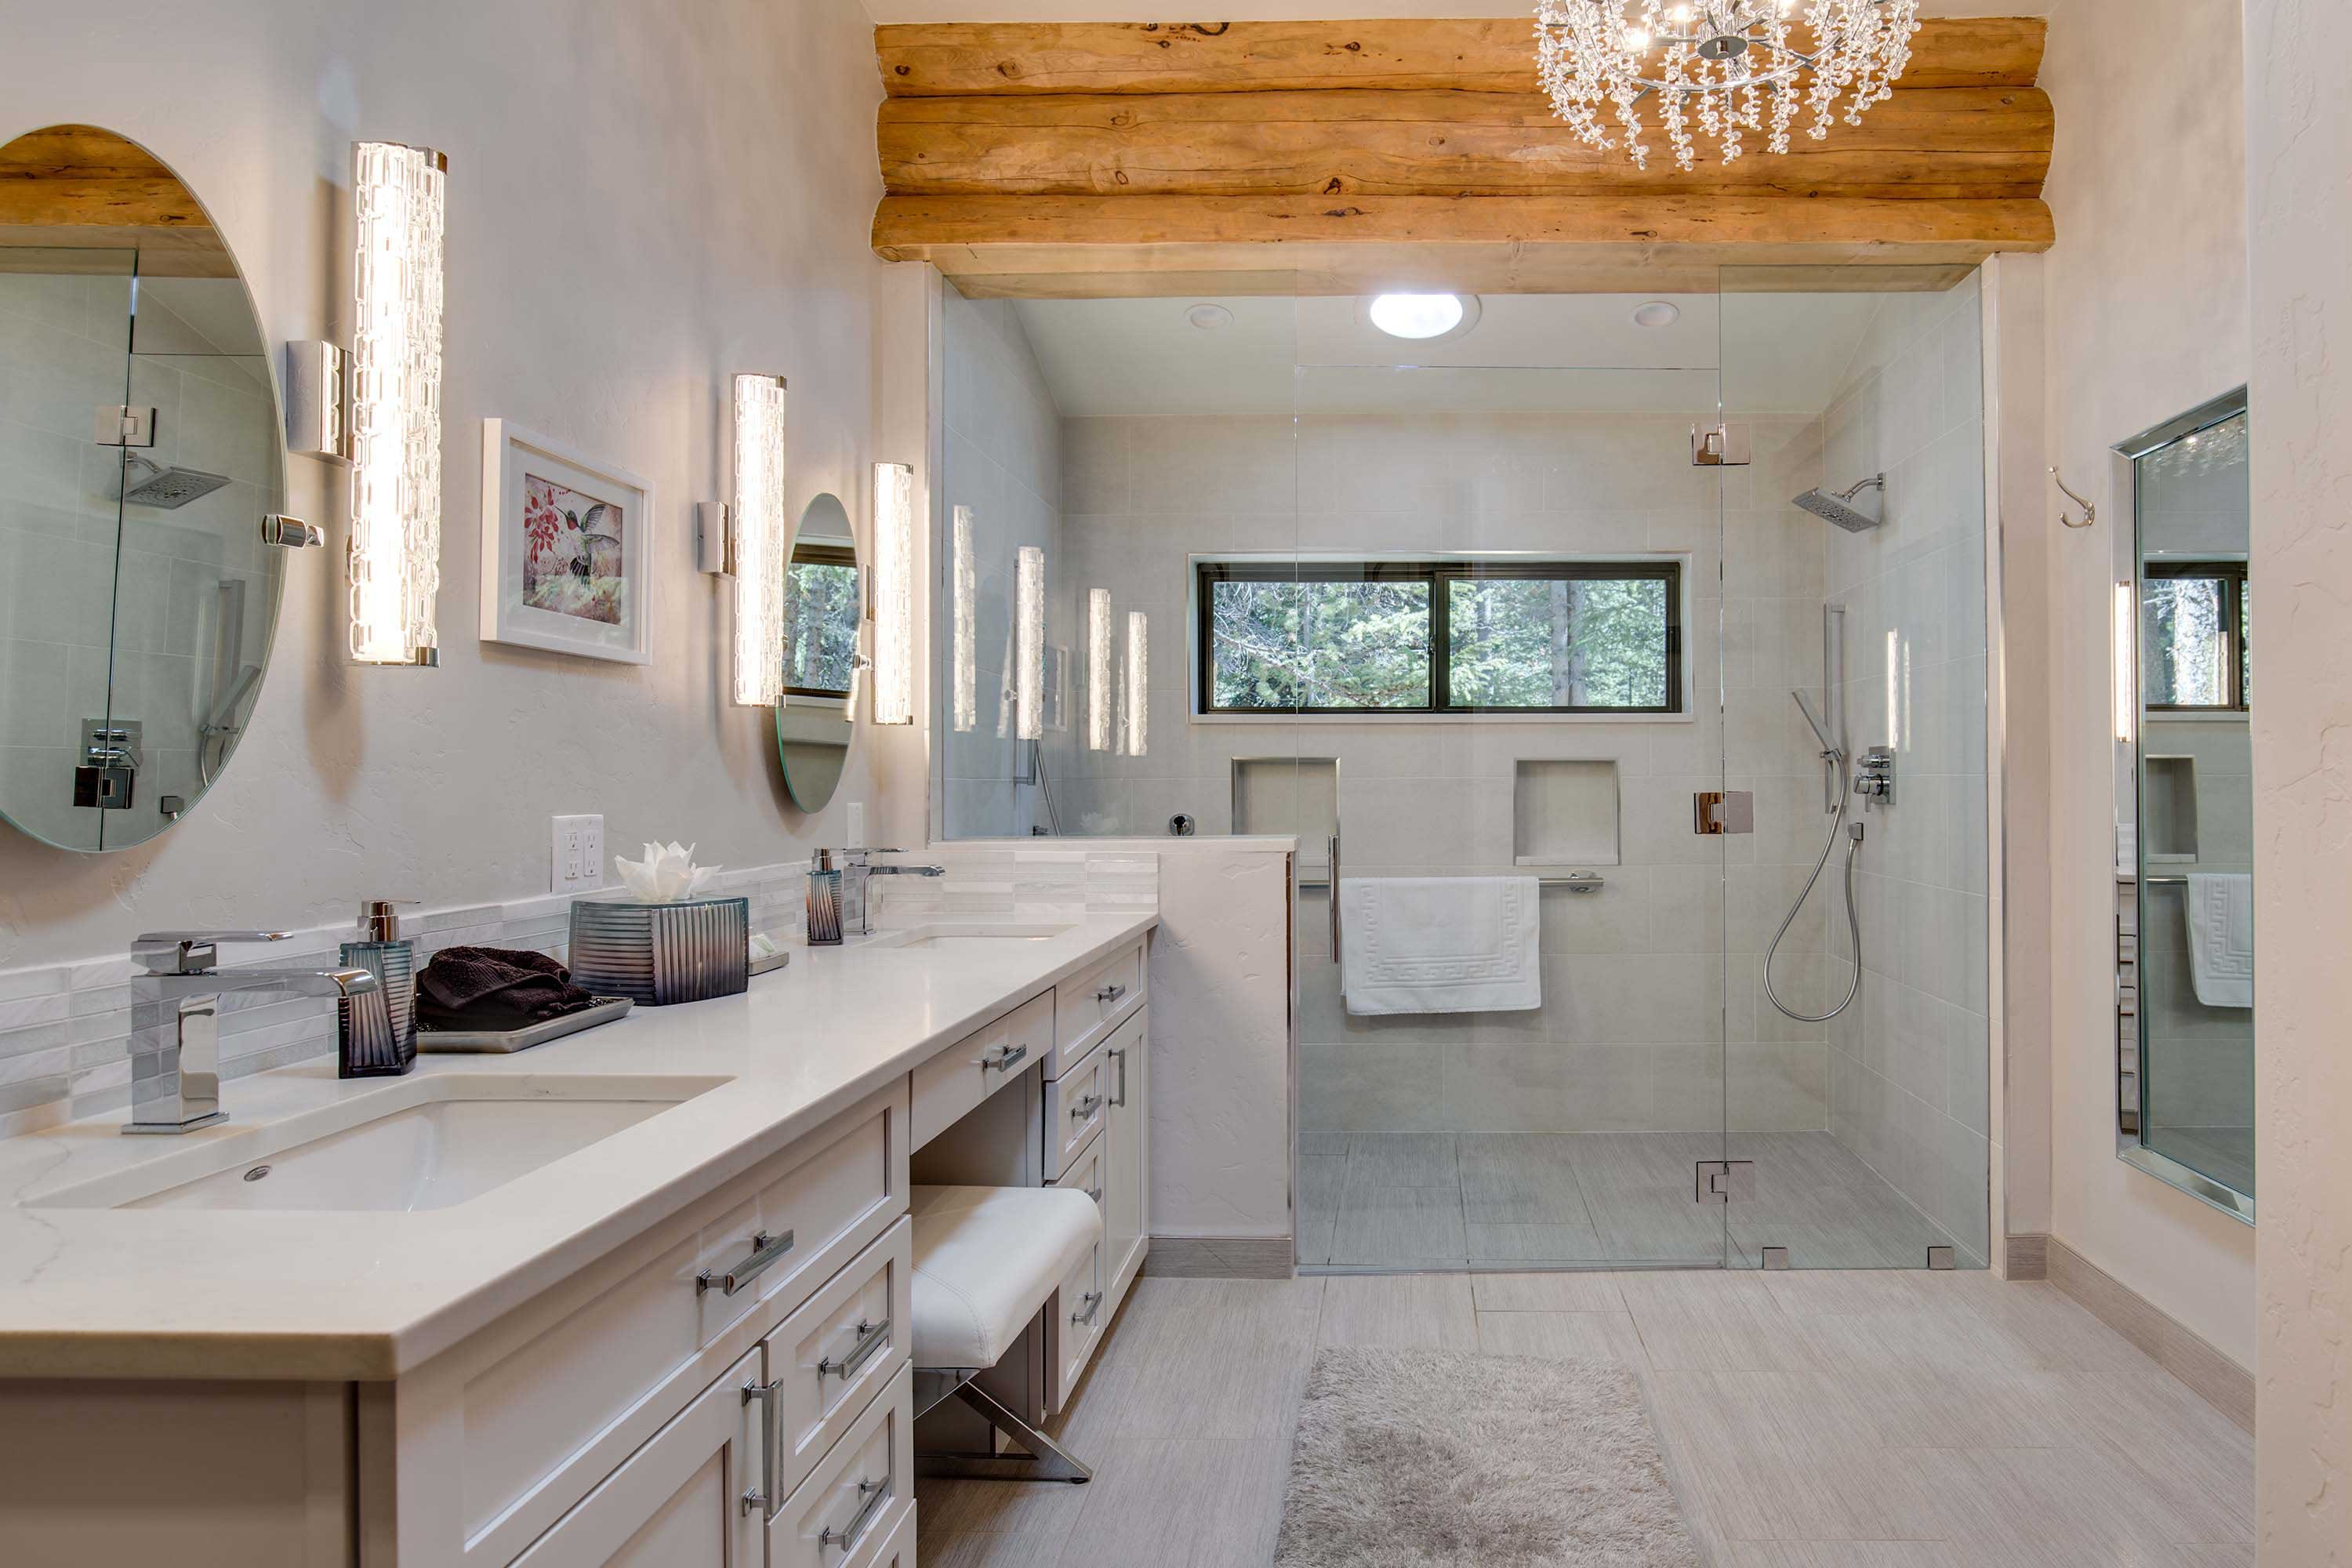 The home's bathrooms are sure to impress.